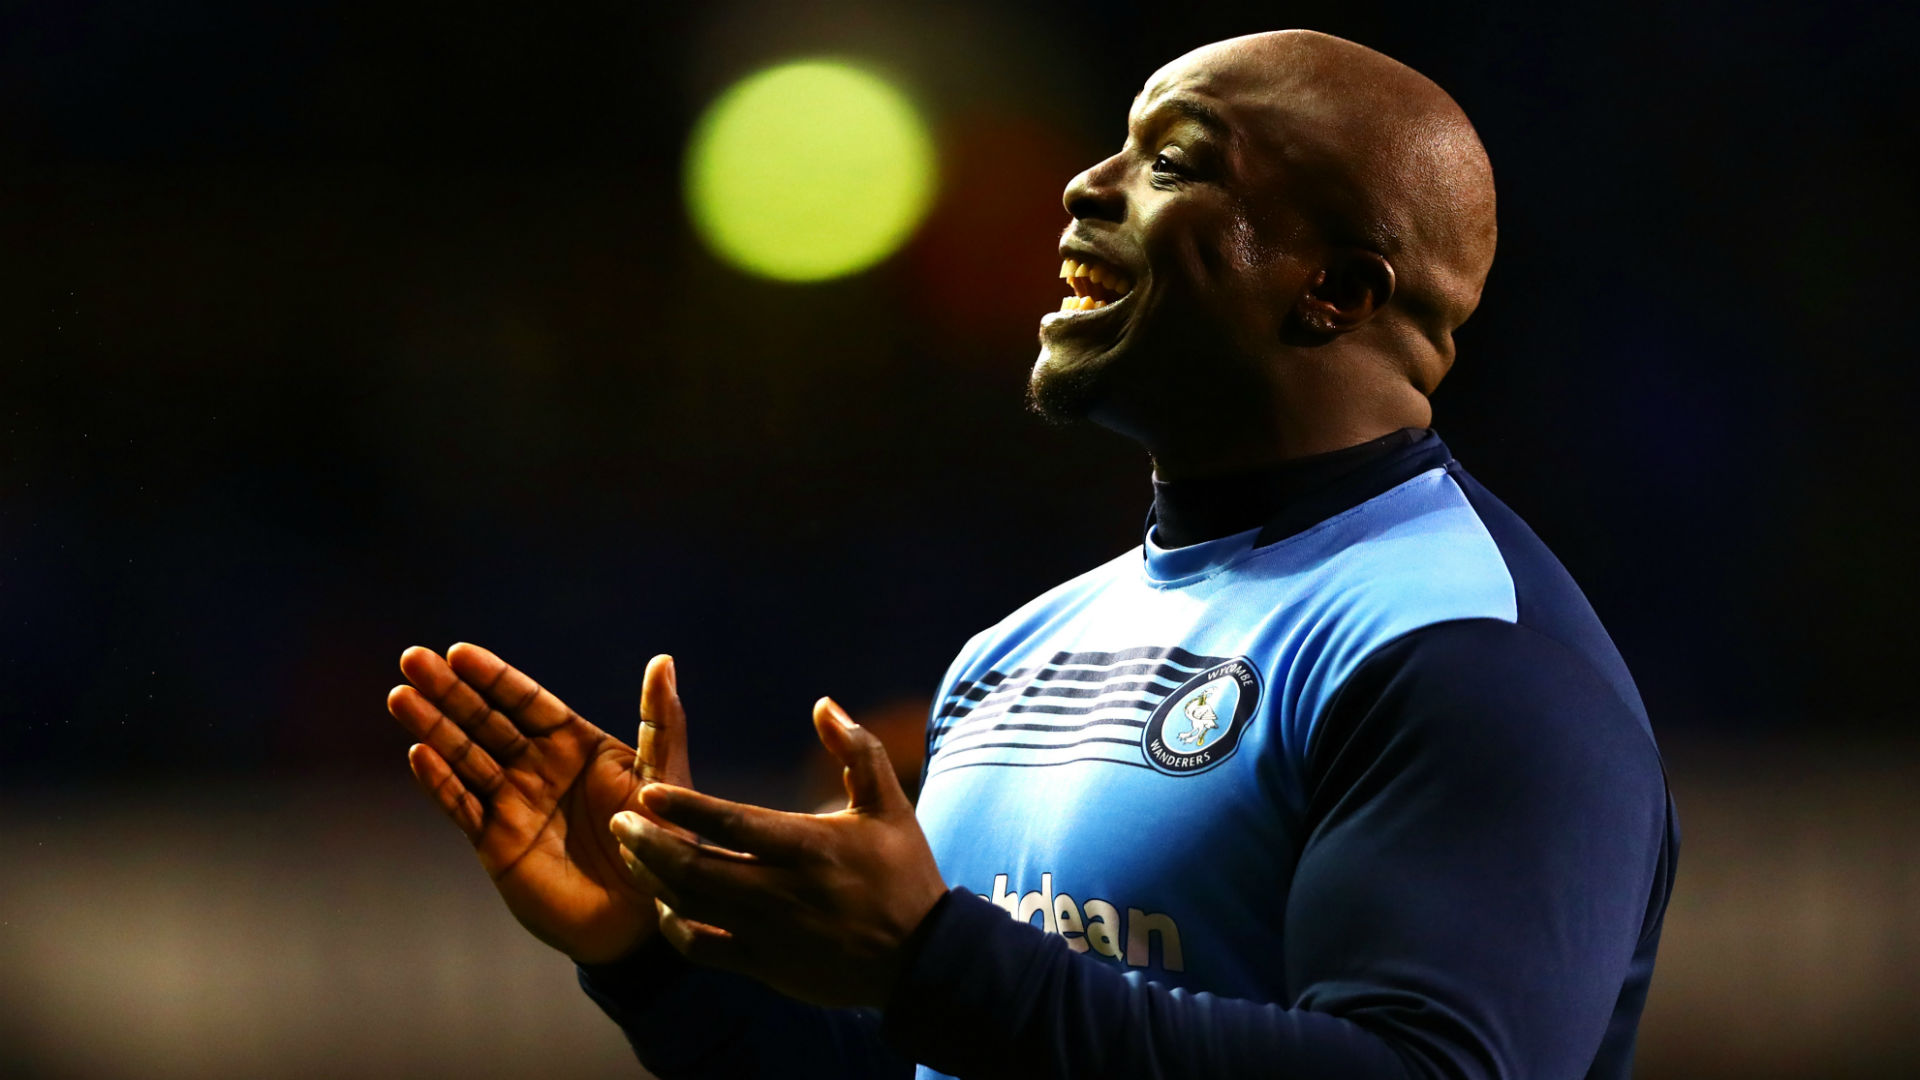 Watch AFC Wimbledon relive Akinfenwa's impact against Crawley Town